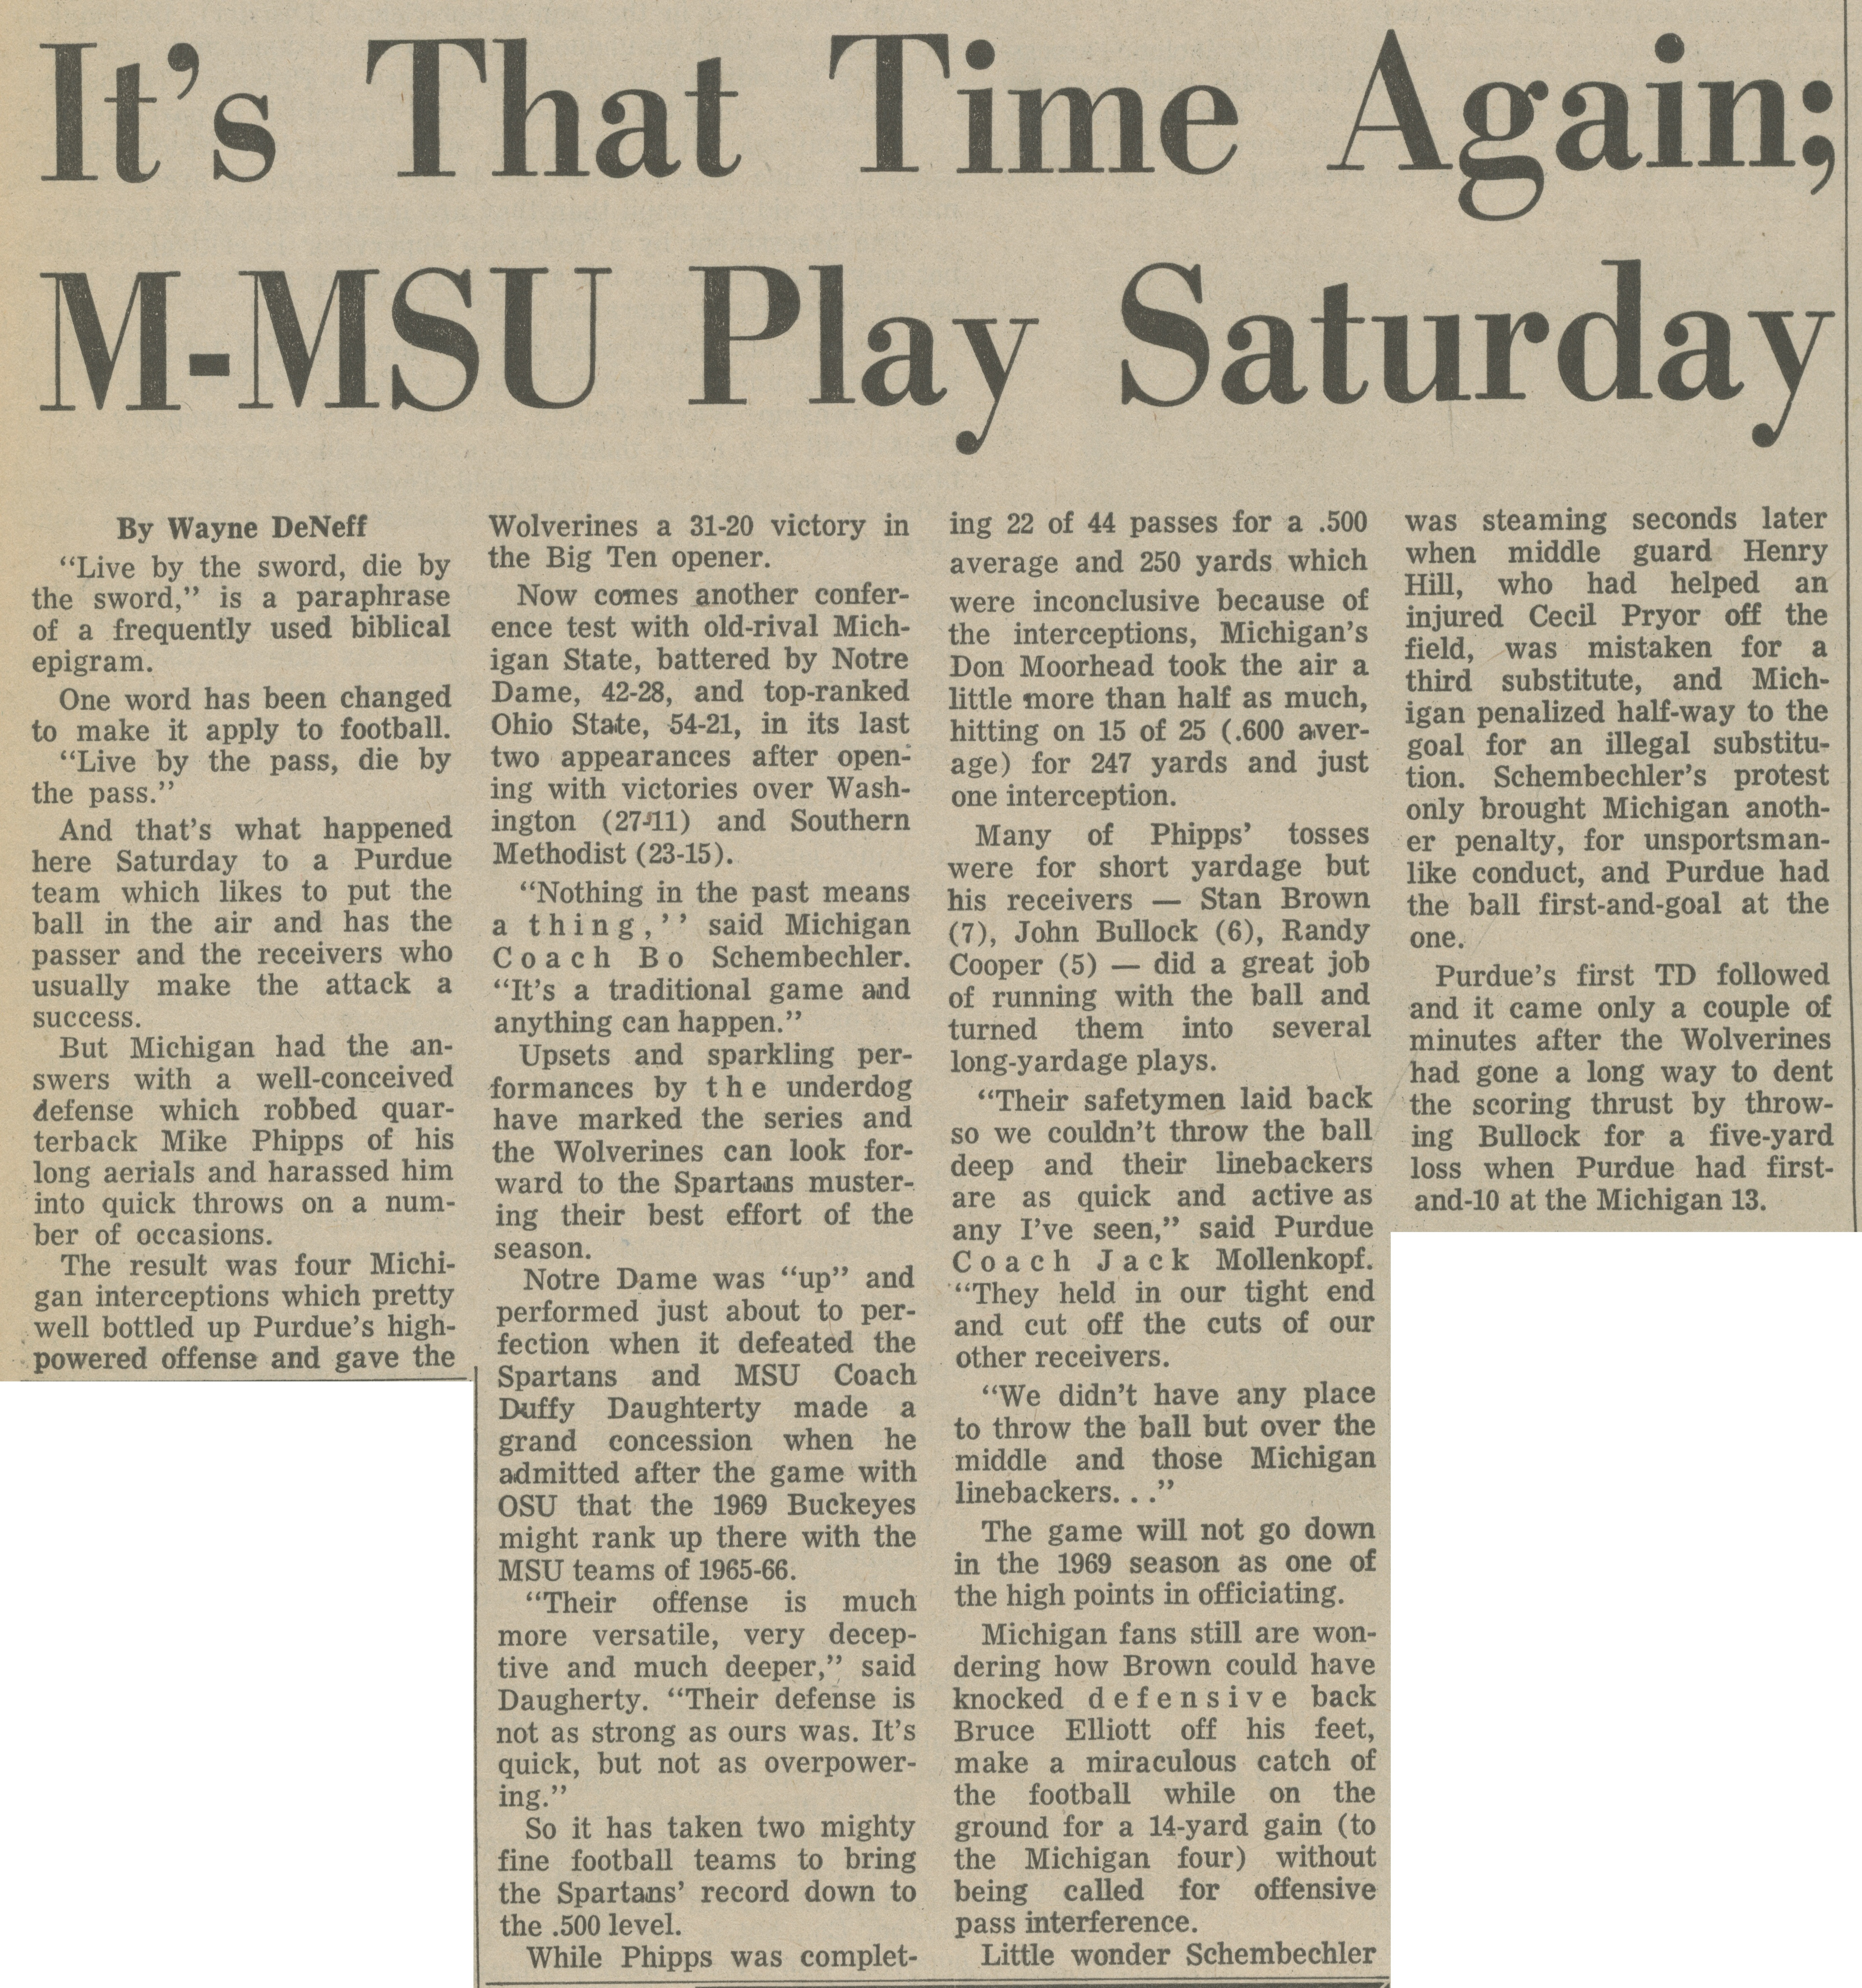 It's That Time Again; M-MSU Play Saturday image